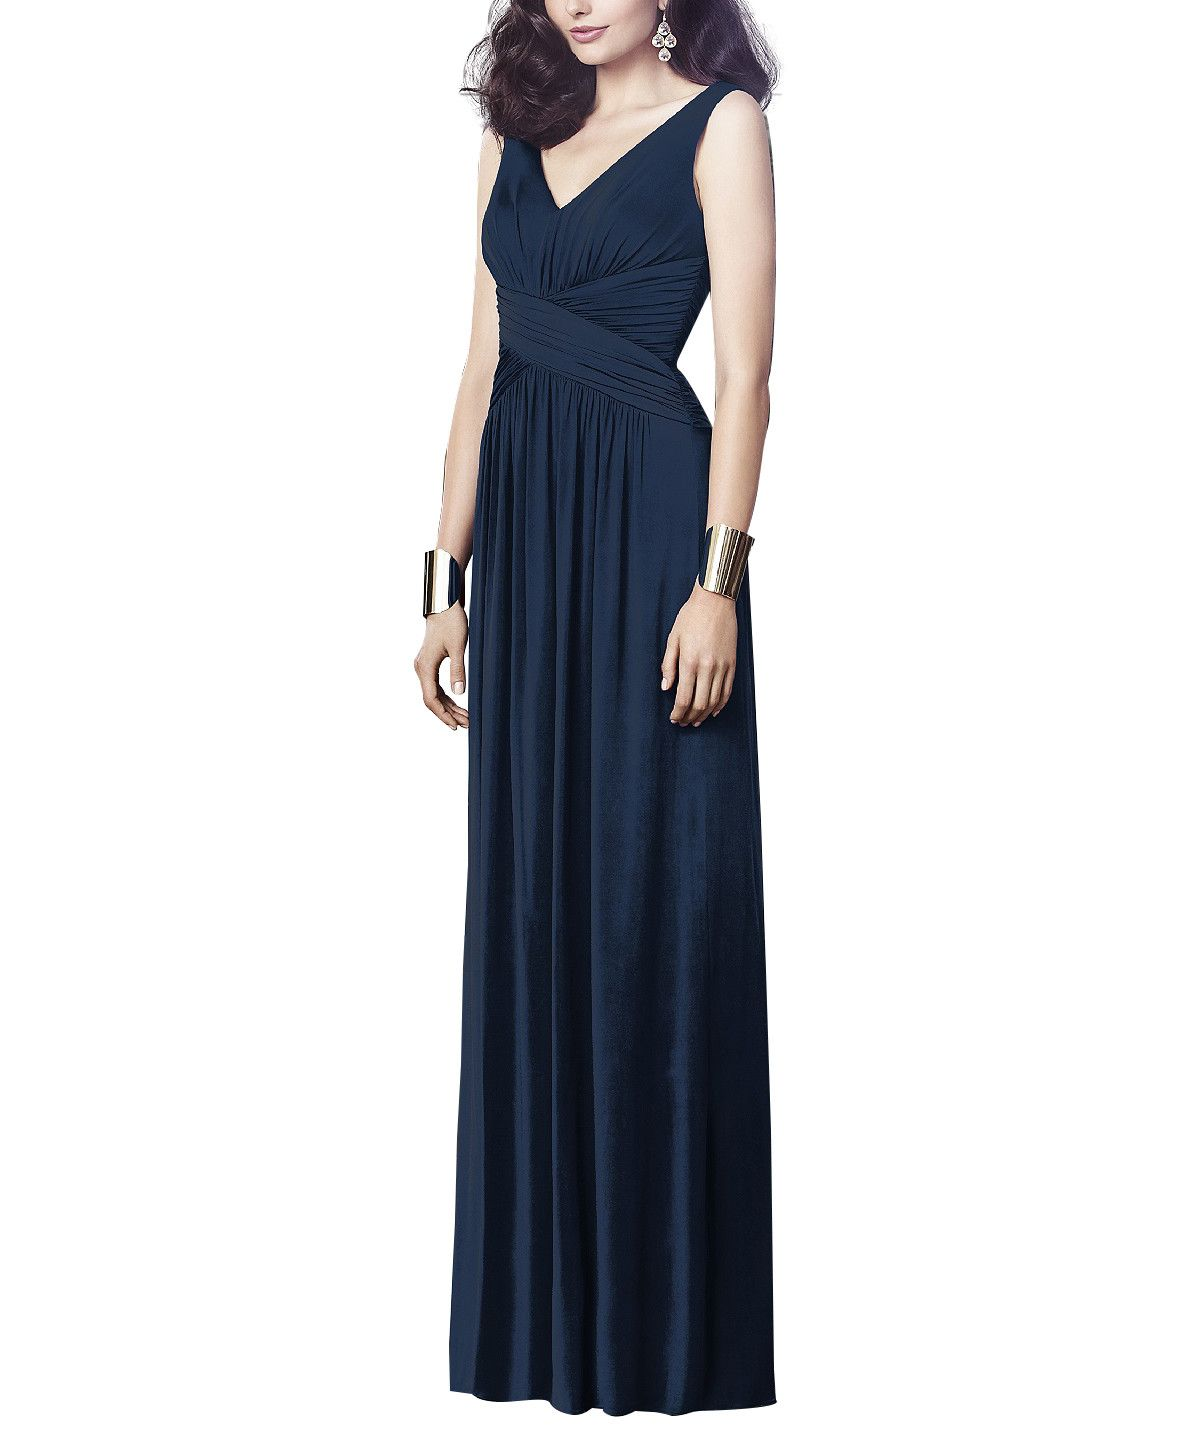 DescriptionDessy Collection Style 2913Full length bridesmaid dressSleeveless, V-necklineCriss cross draped midriffShirring at front and back skirtMaracaine jersey